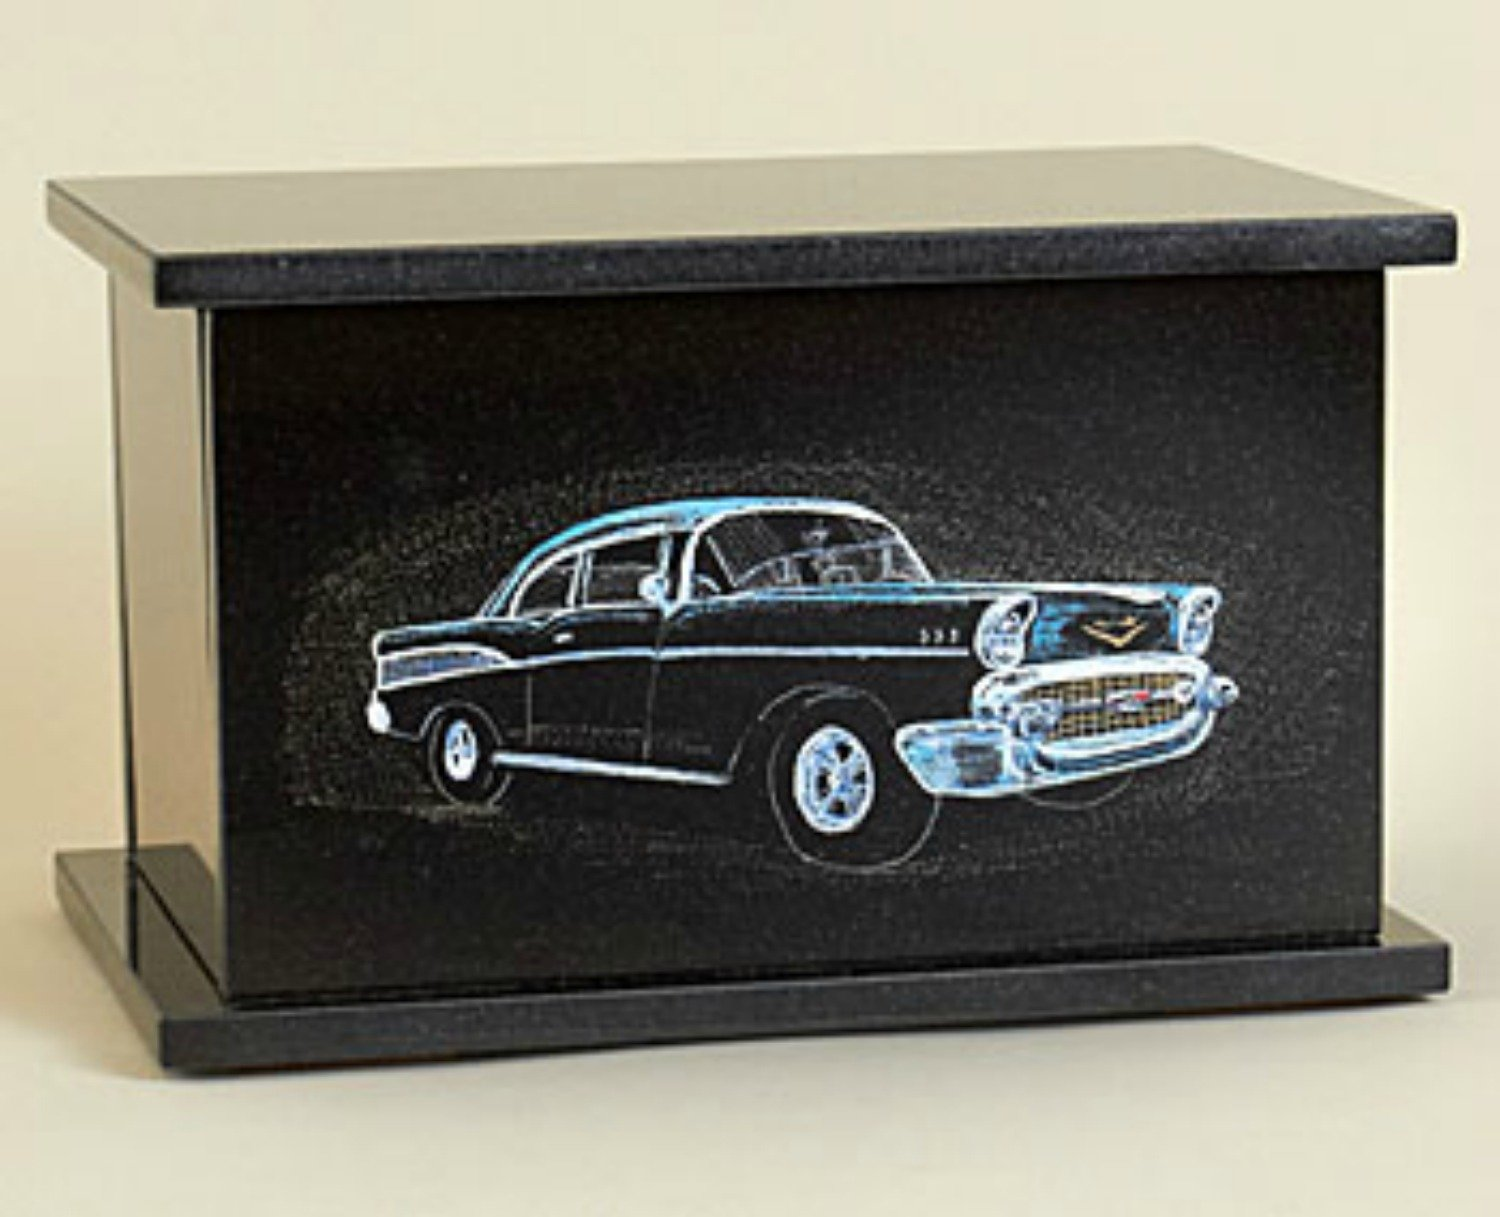 Granite Cremation Urn, 57 Chevy, Made In Vermont